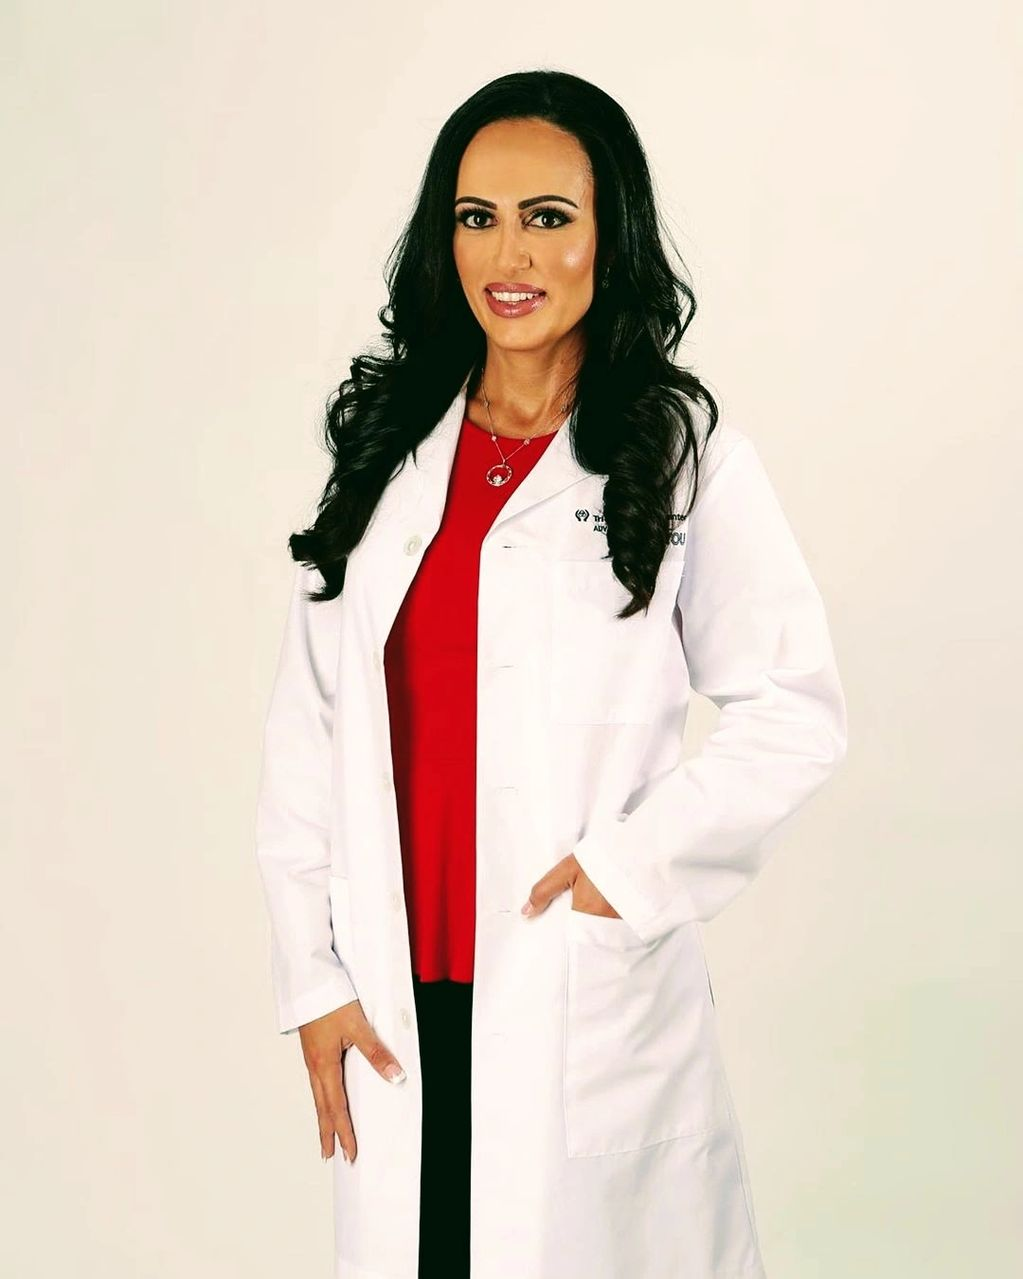 Dr nina chaya MD posing for tri-city district 7 board. dr nina chaya md is in tri-city election